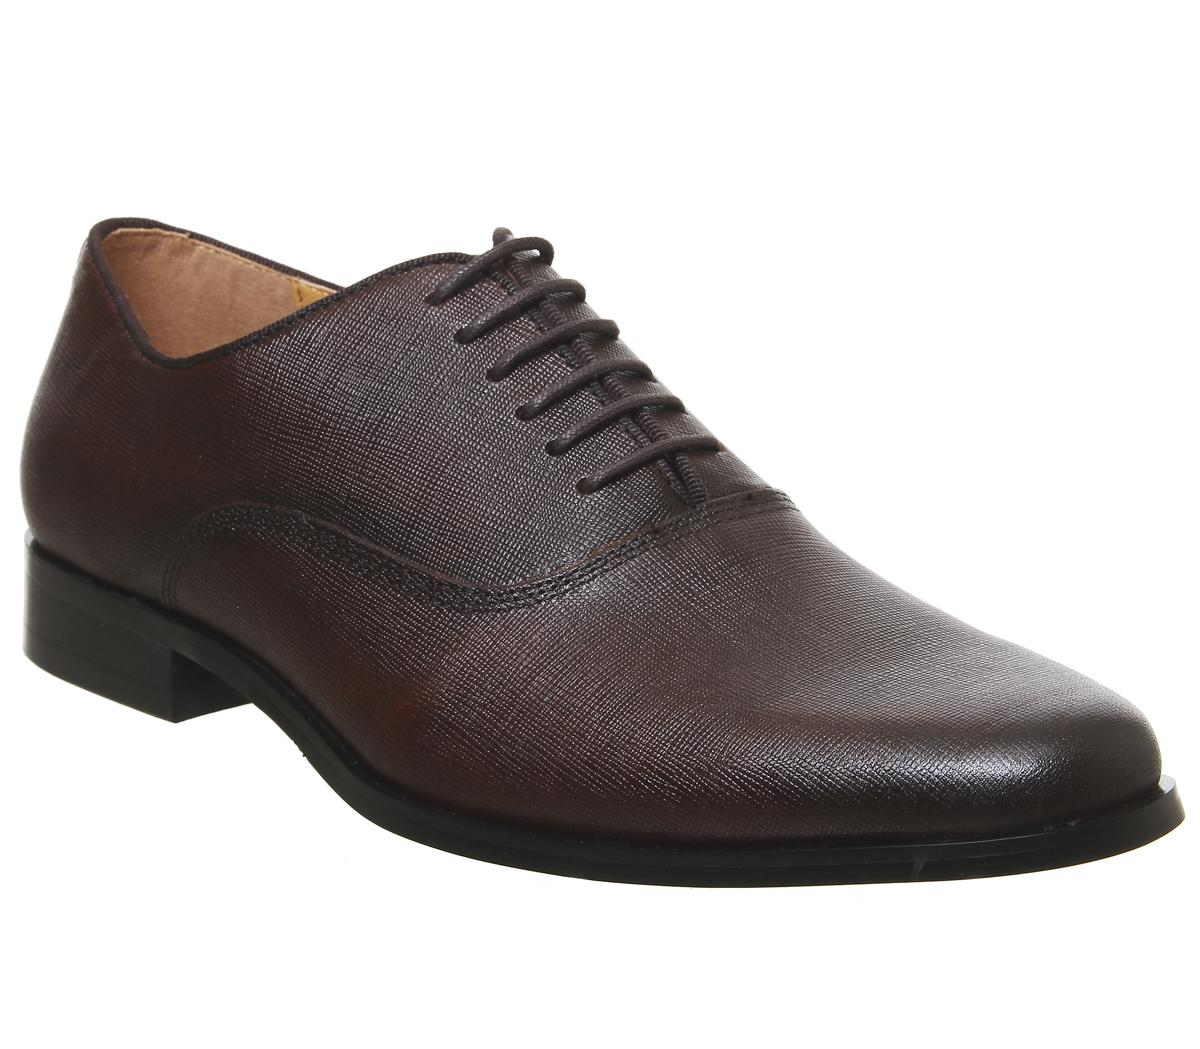 Ladder Oxford Shoes